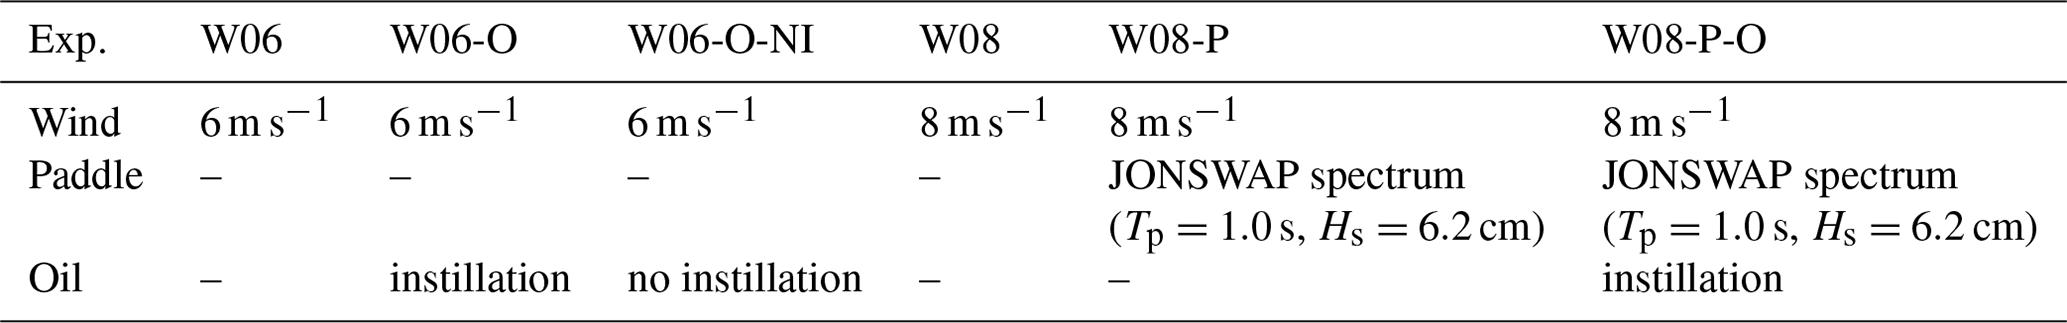 OS - Analysis of the effect of fish oil on wind waves and